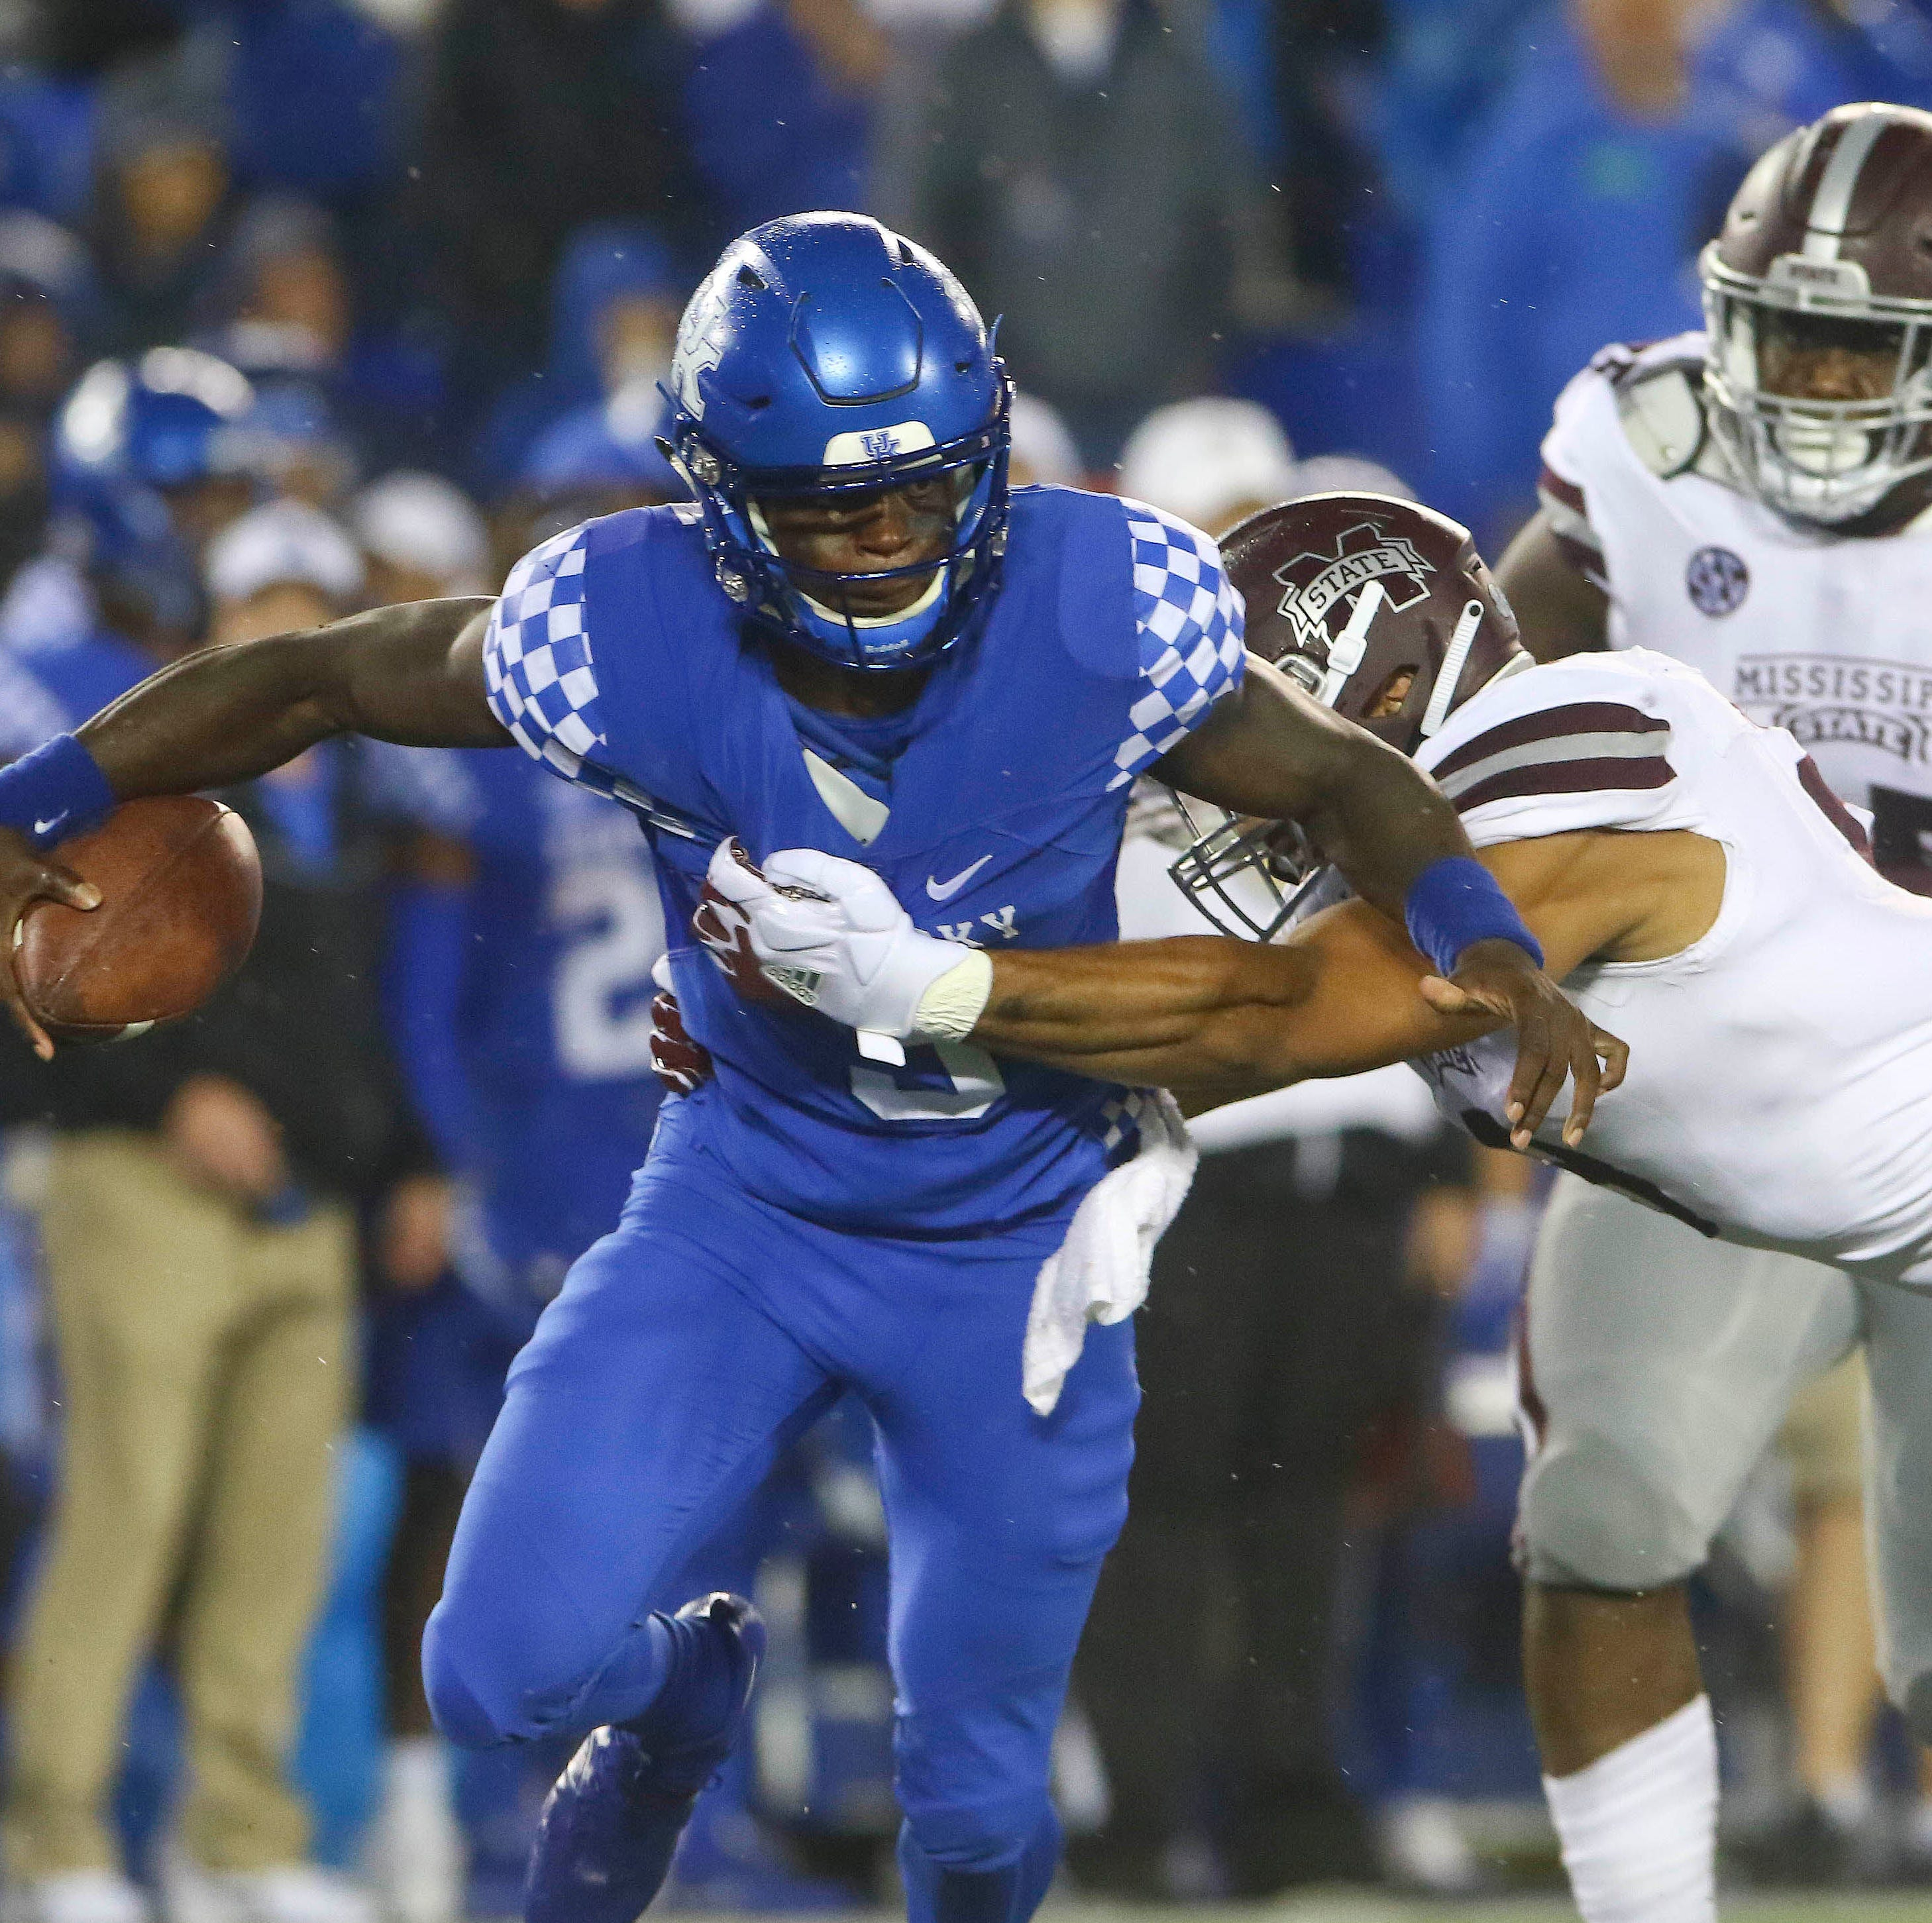 How it happened: Kentucky tops Mississippi State 28-7